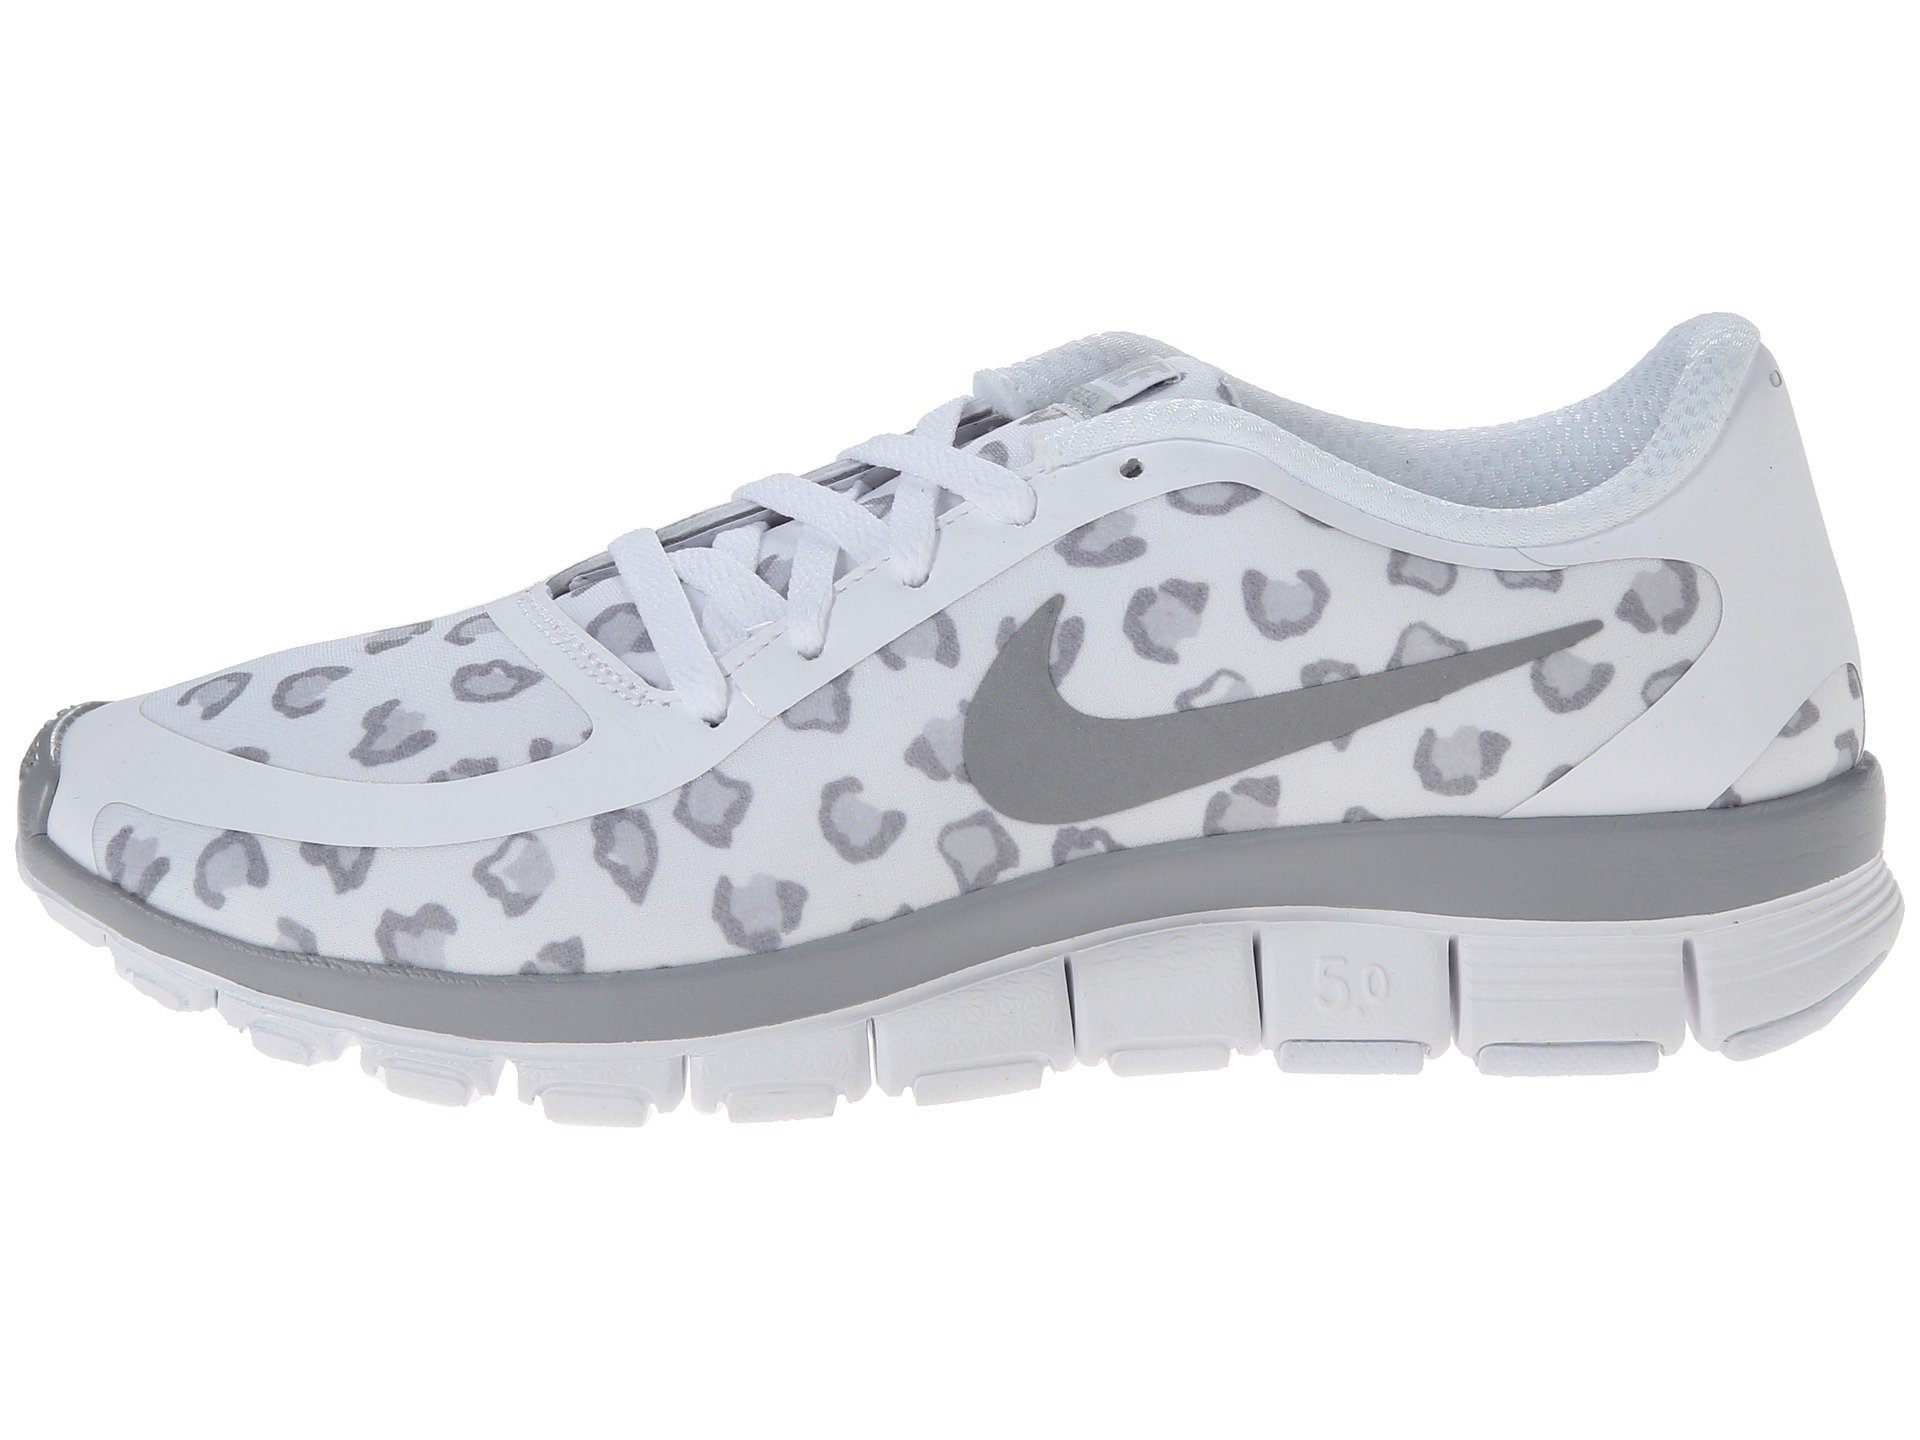 Nike Free 5.0 V4 Womens Cool Grey Pink White